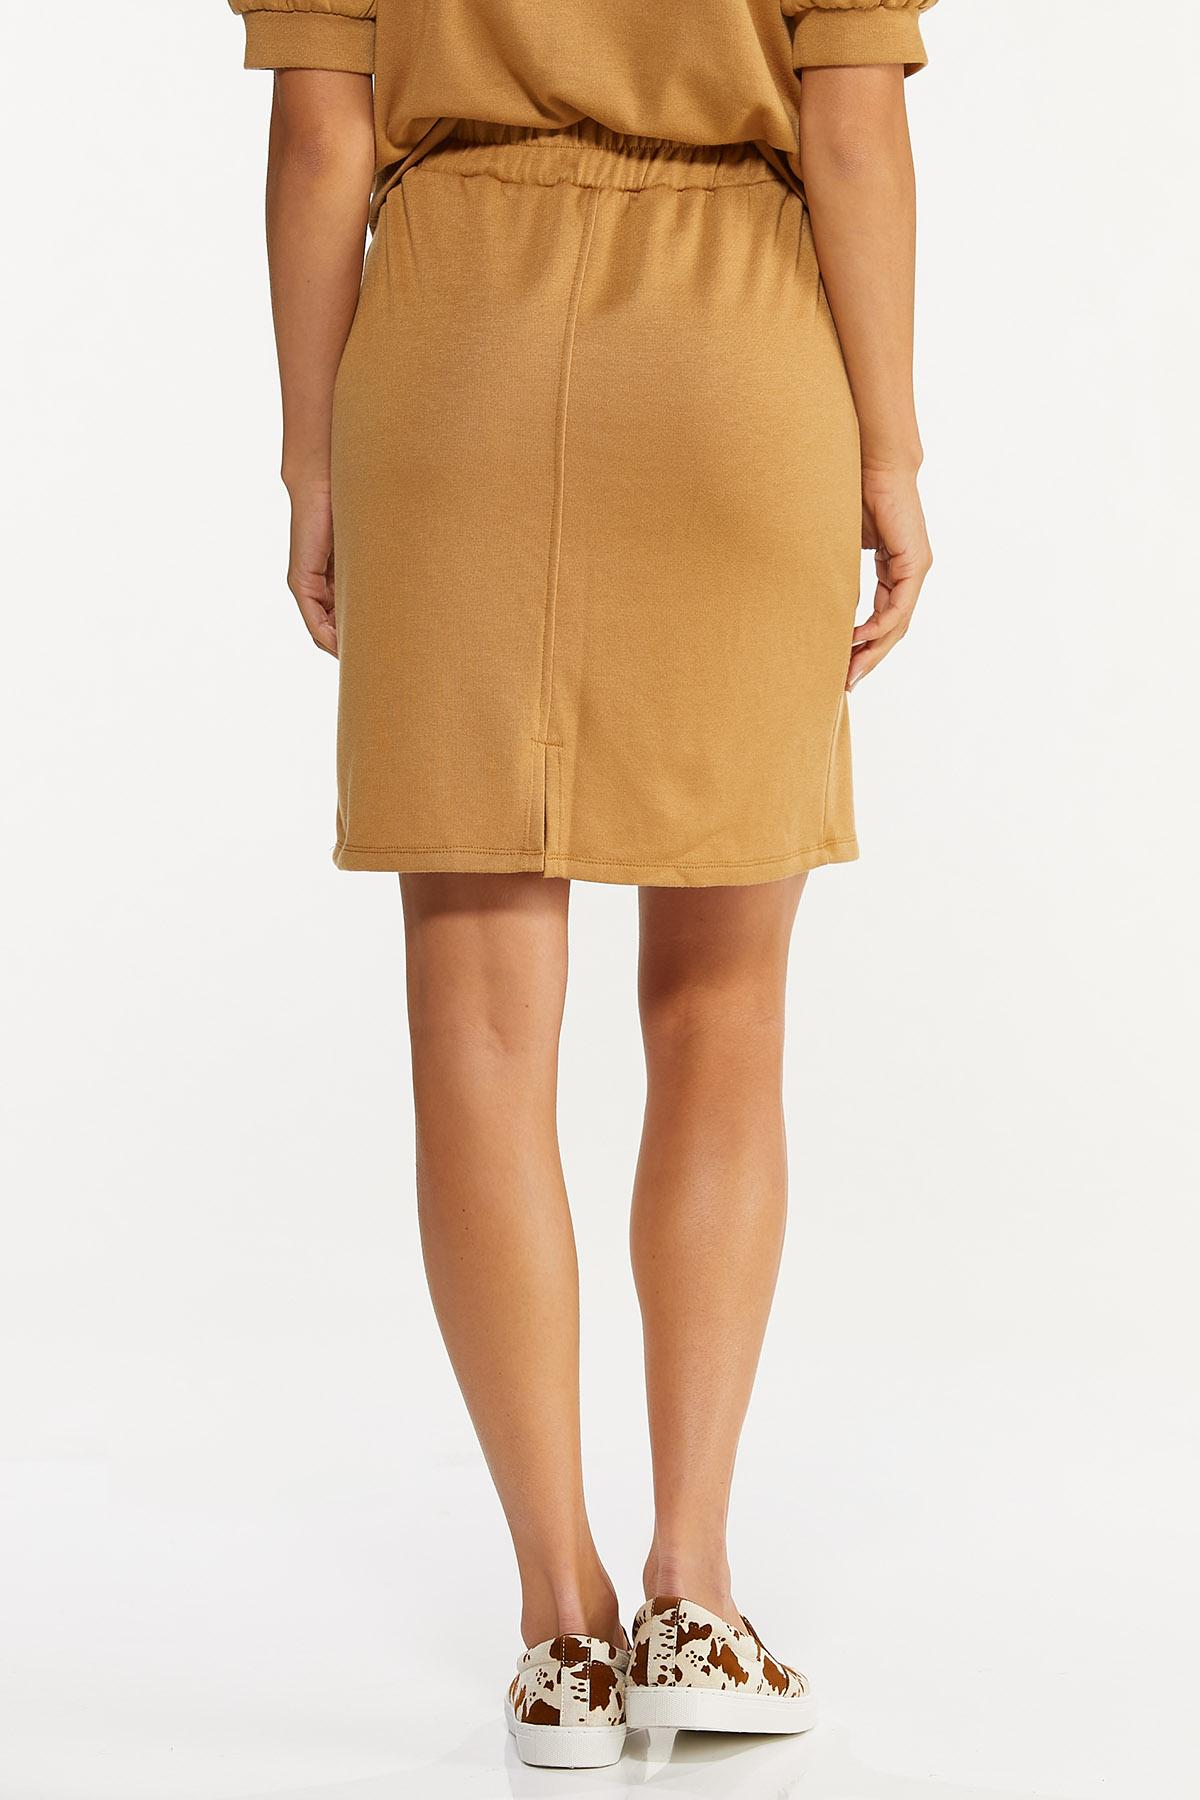 French Terry Skirt (Item #44696423)